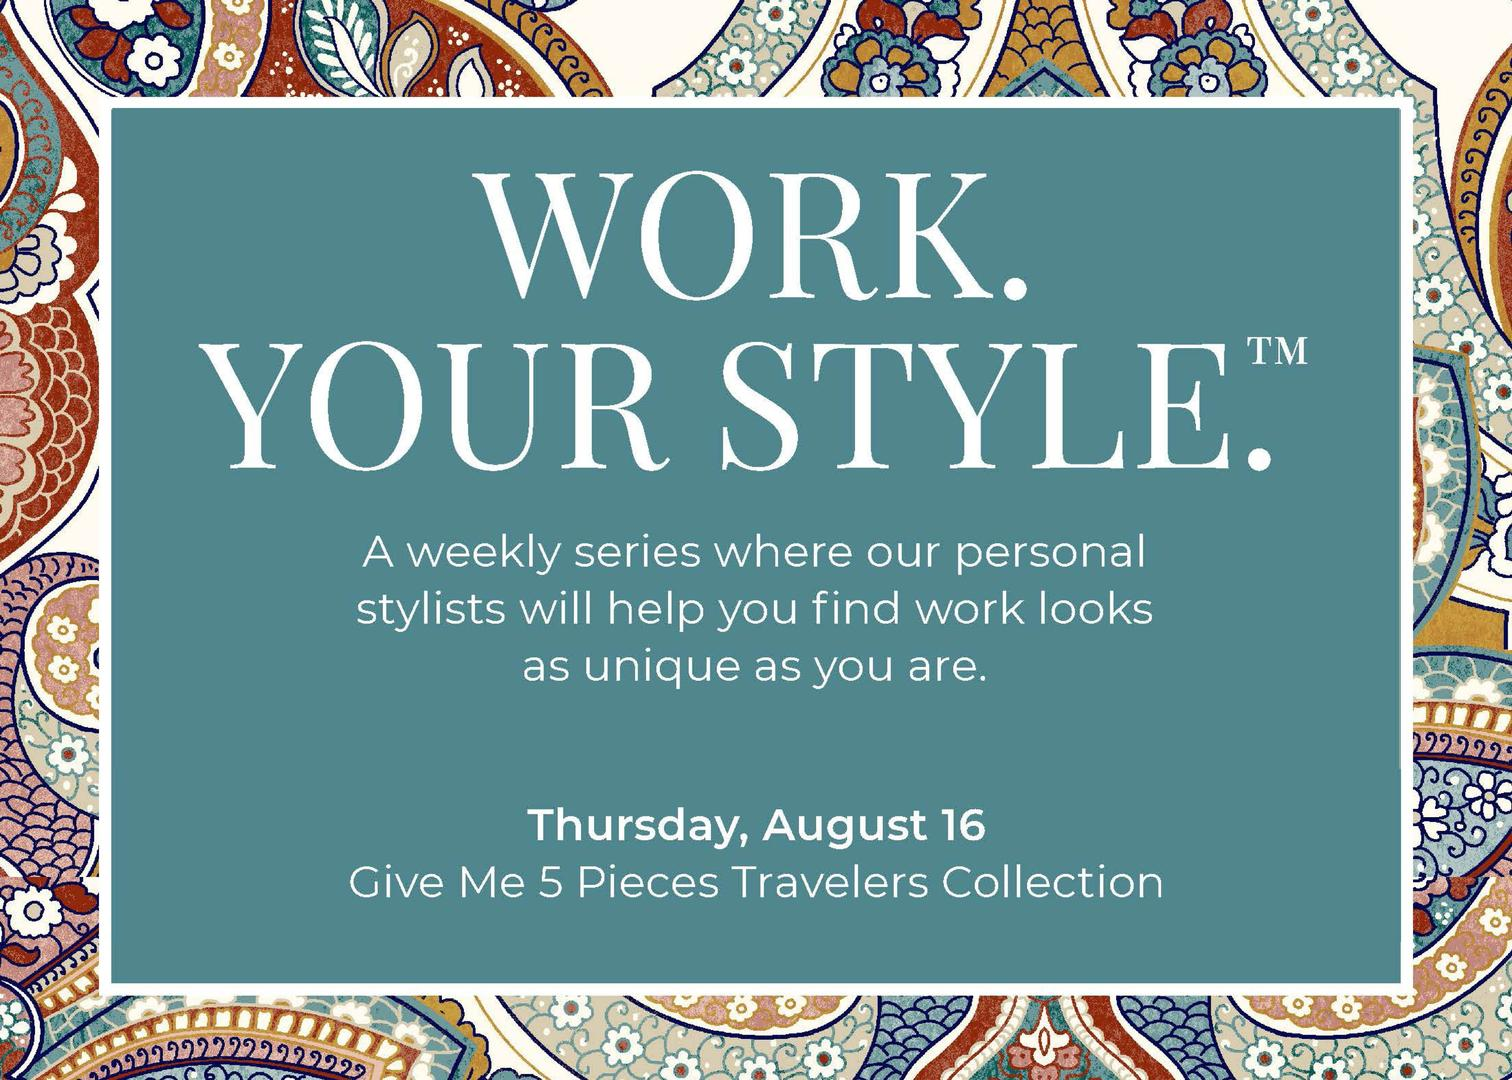 Zona Rosa, Work You Style- Give Me 5 Pieces Travelers Collection  Event Image: 8742 NW Prairie View Rd, Spc E115, Kansas City, MO 64153, US